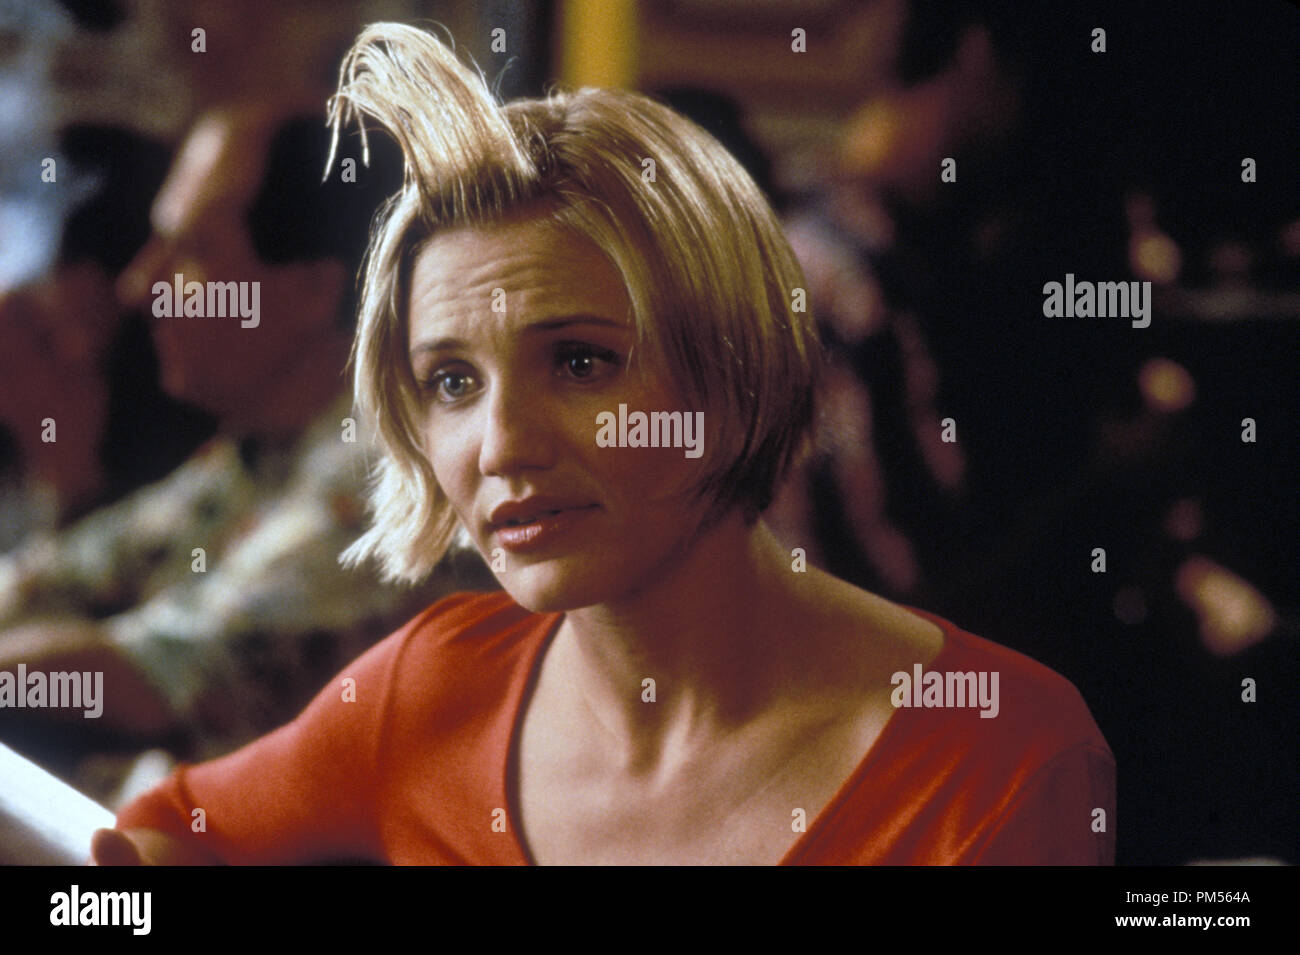 There's Something About Mary 1998 Cameron Diaz - Stock Image